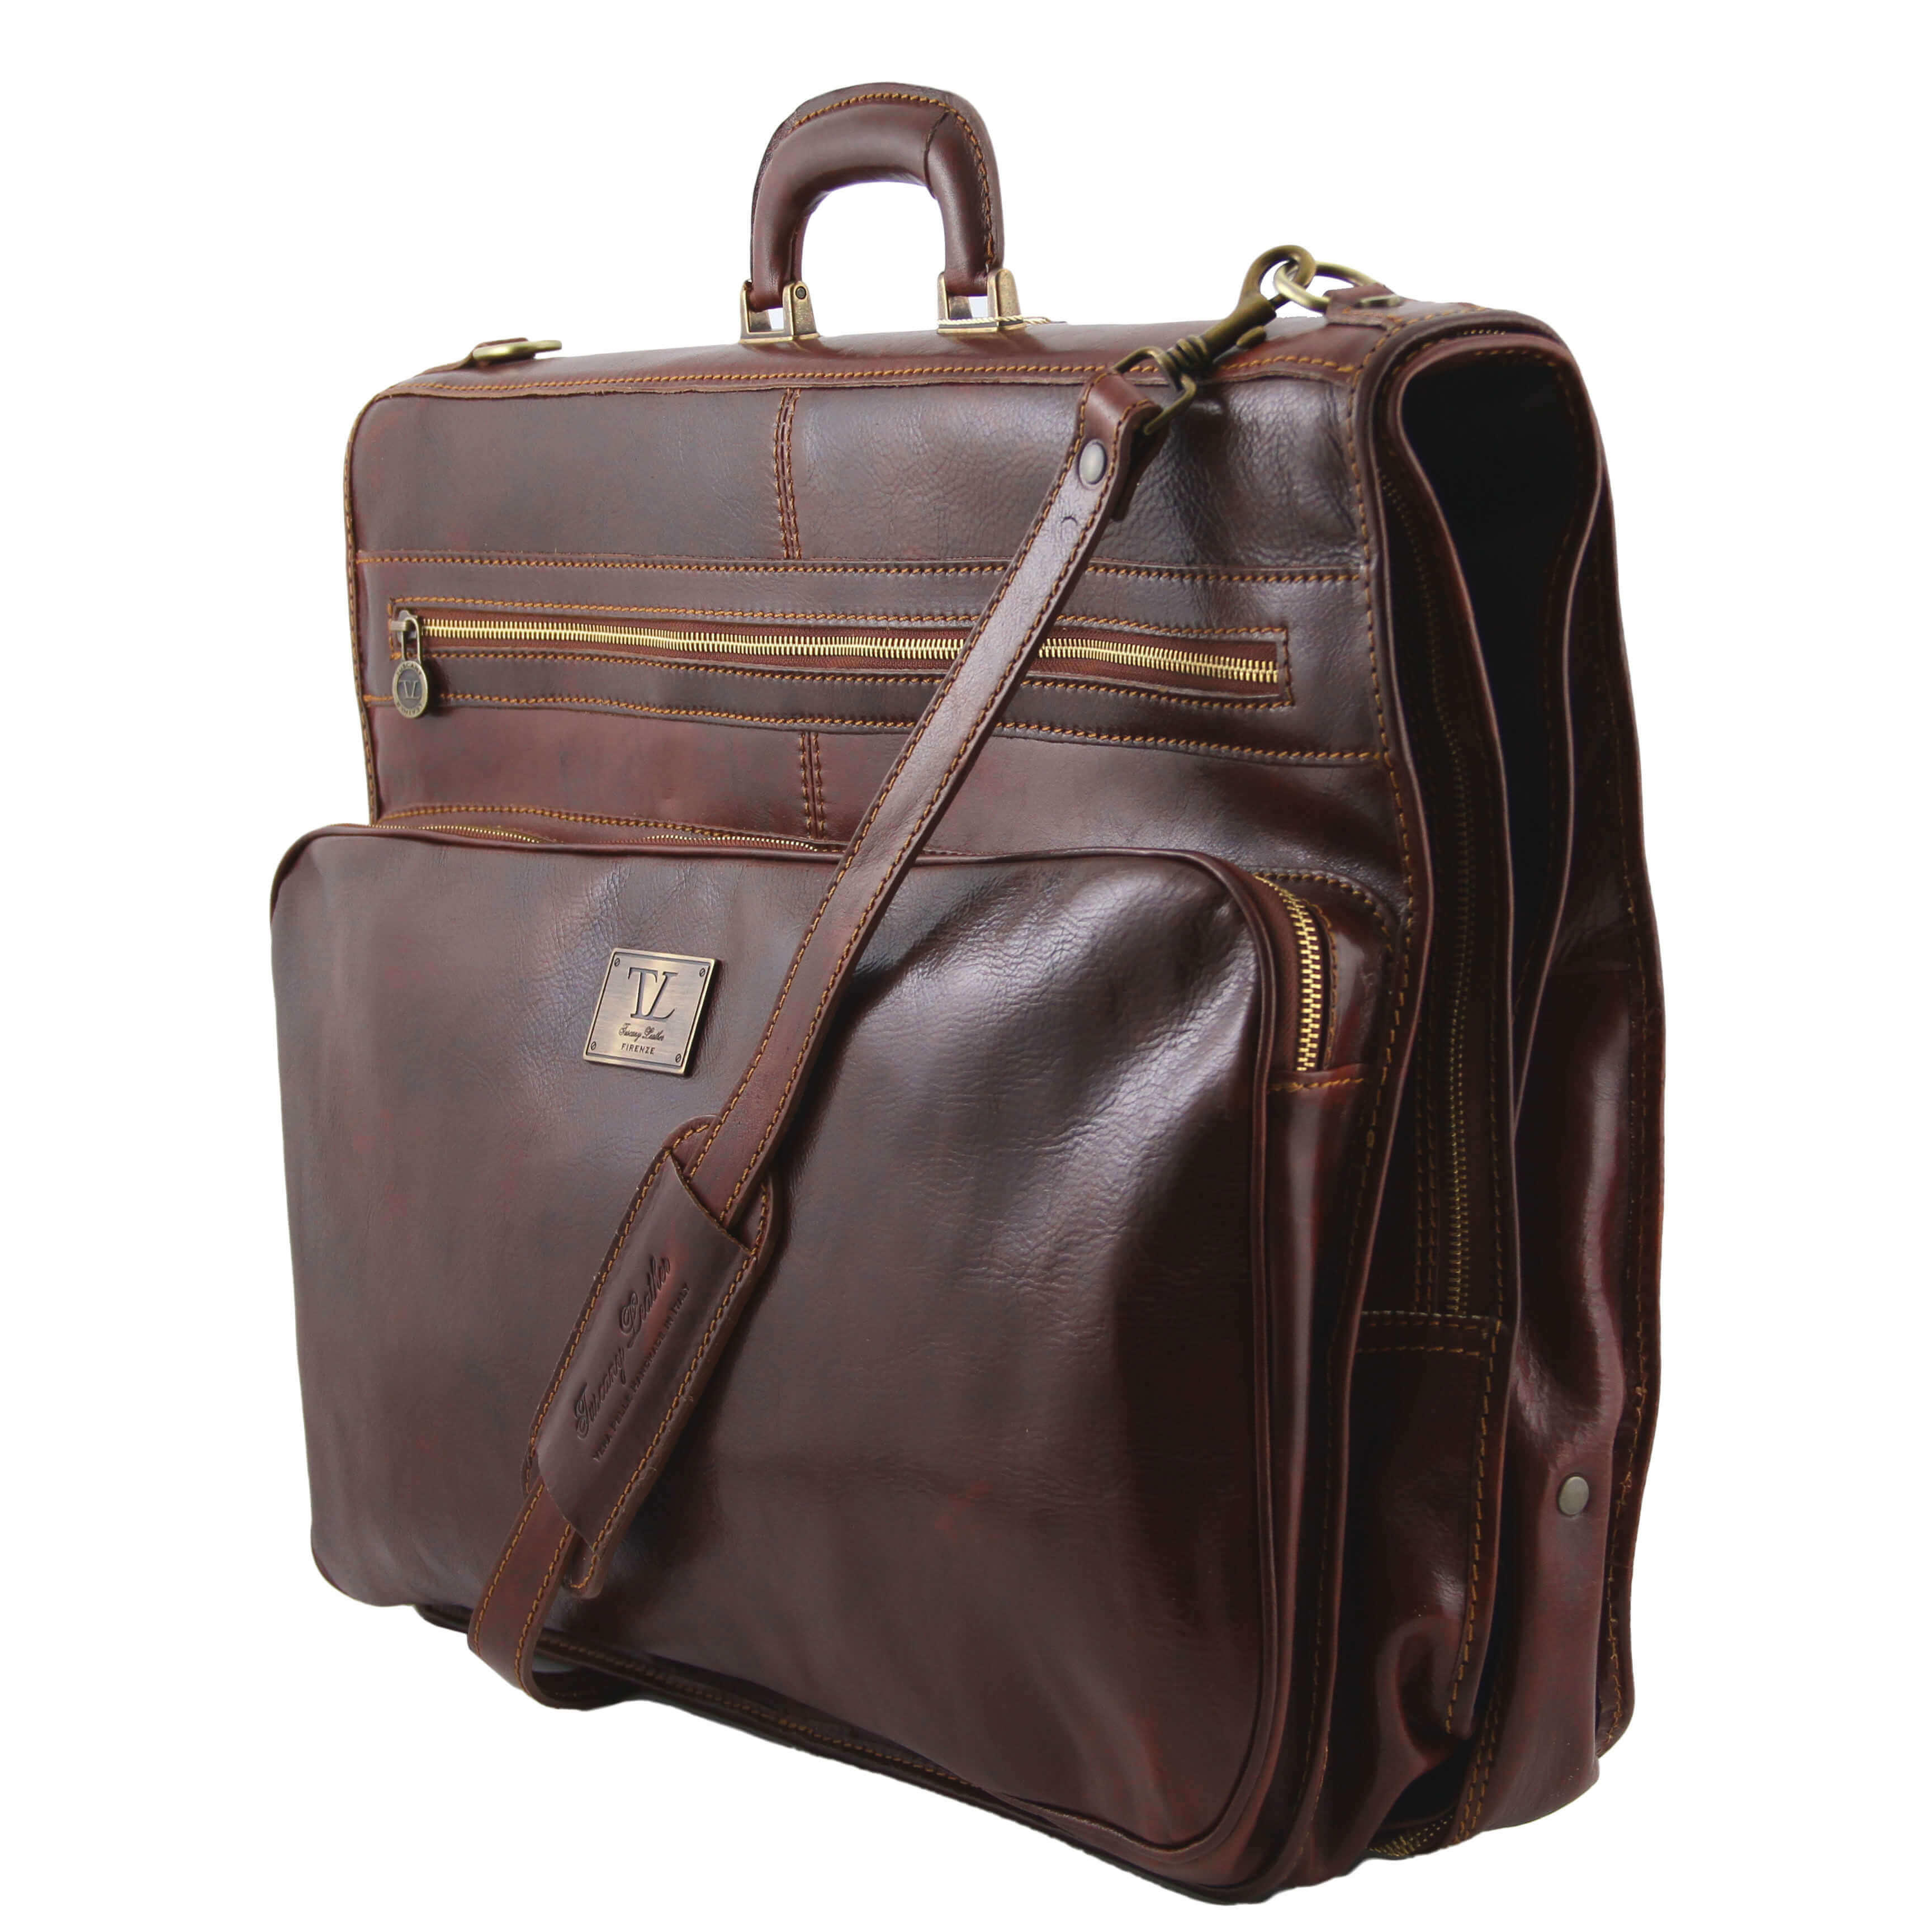 TL3056 Papeete Leather Suit - Garment Carrier Travel Bag Holdall